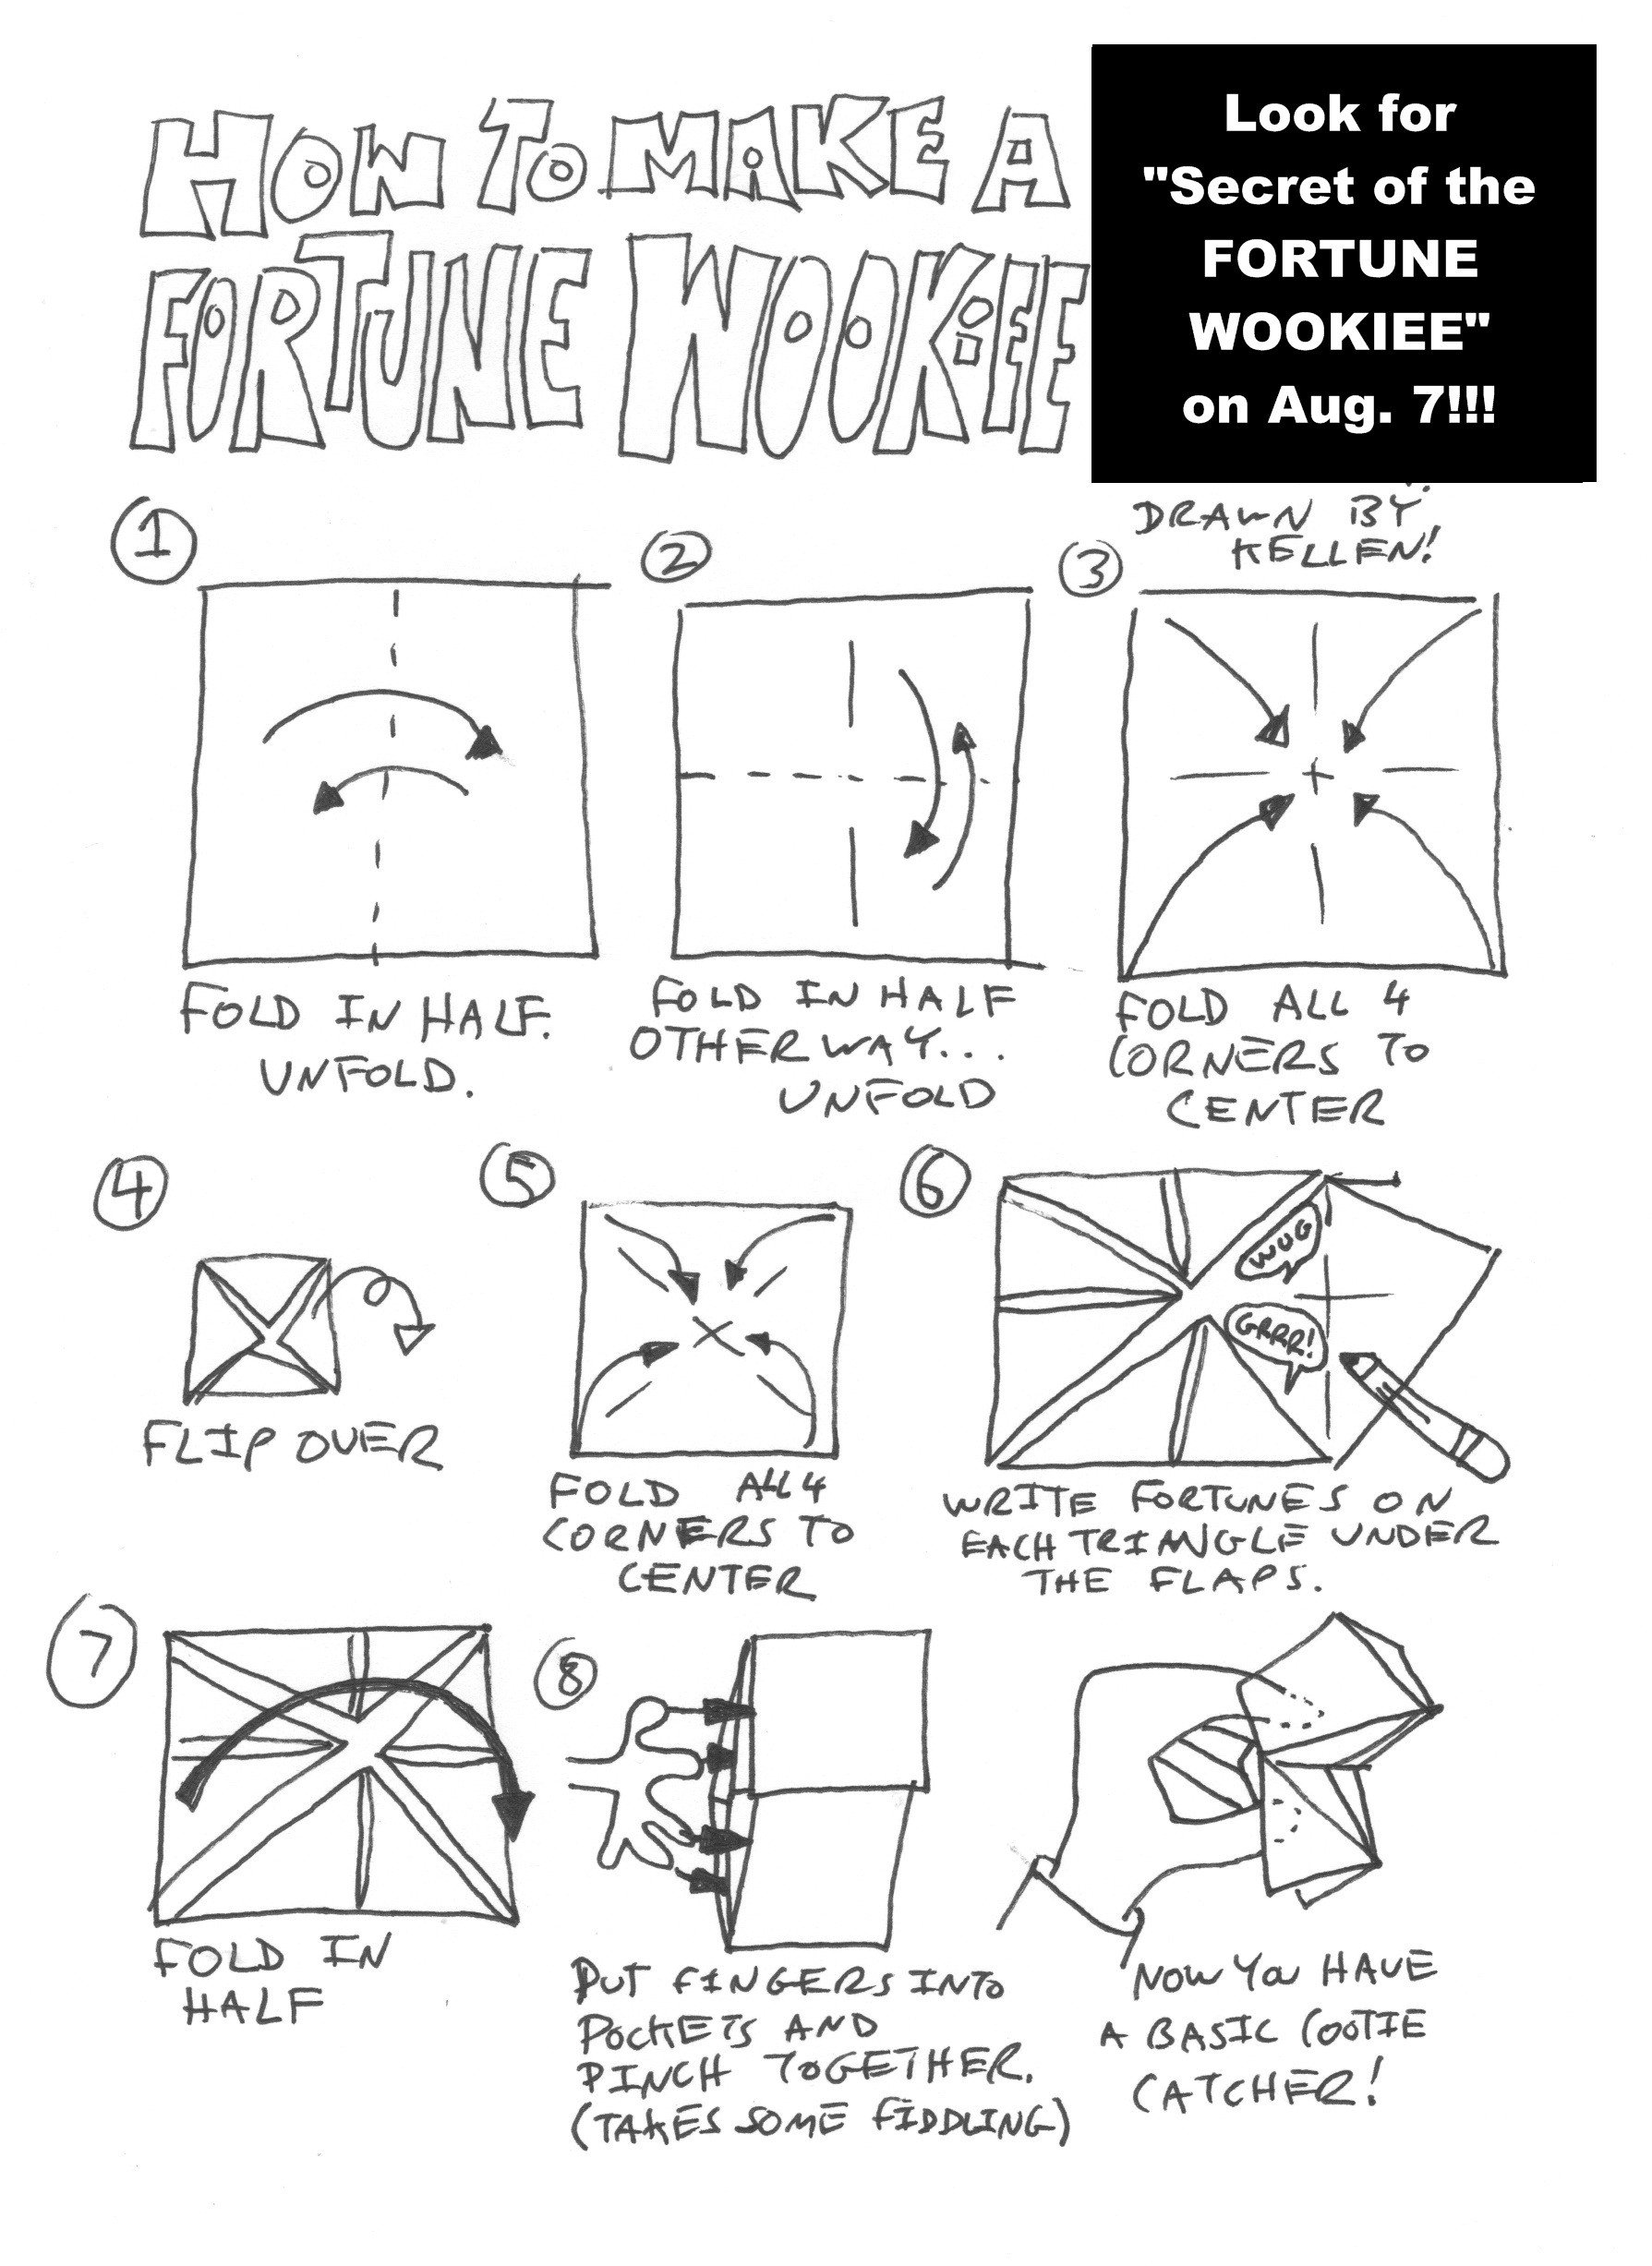 Fortune Wookiee Paper Print Out Make Your Own fortune Wookiee